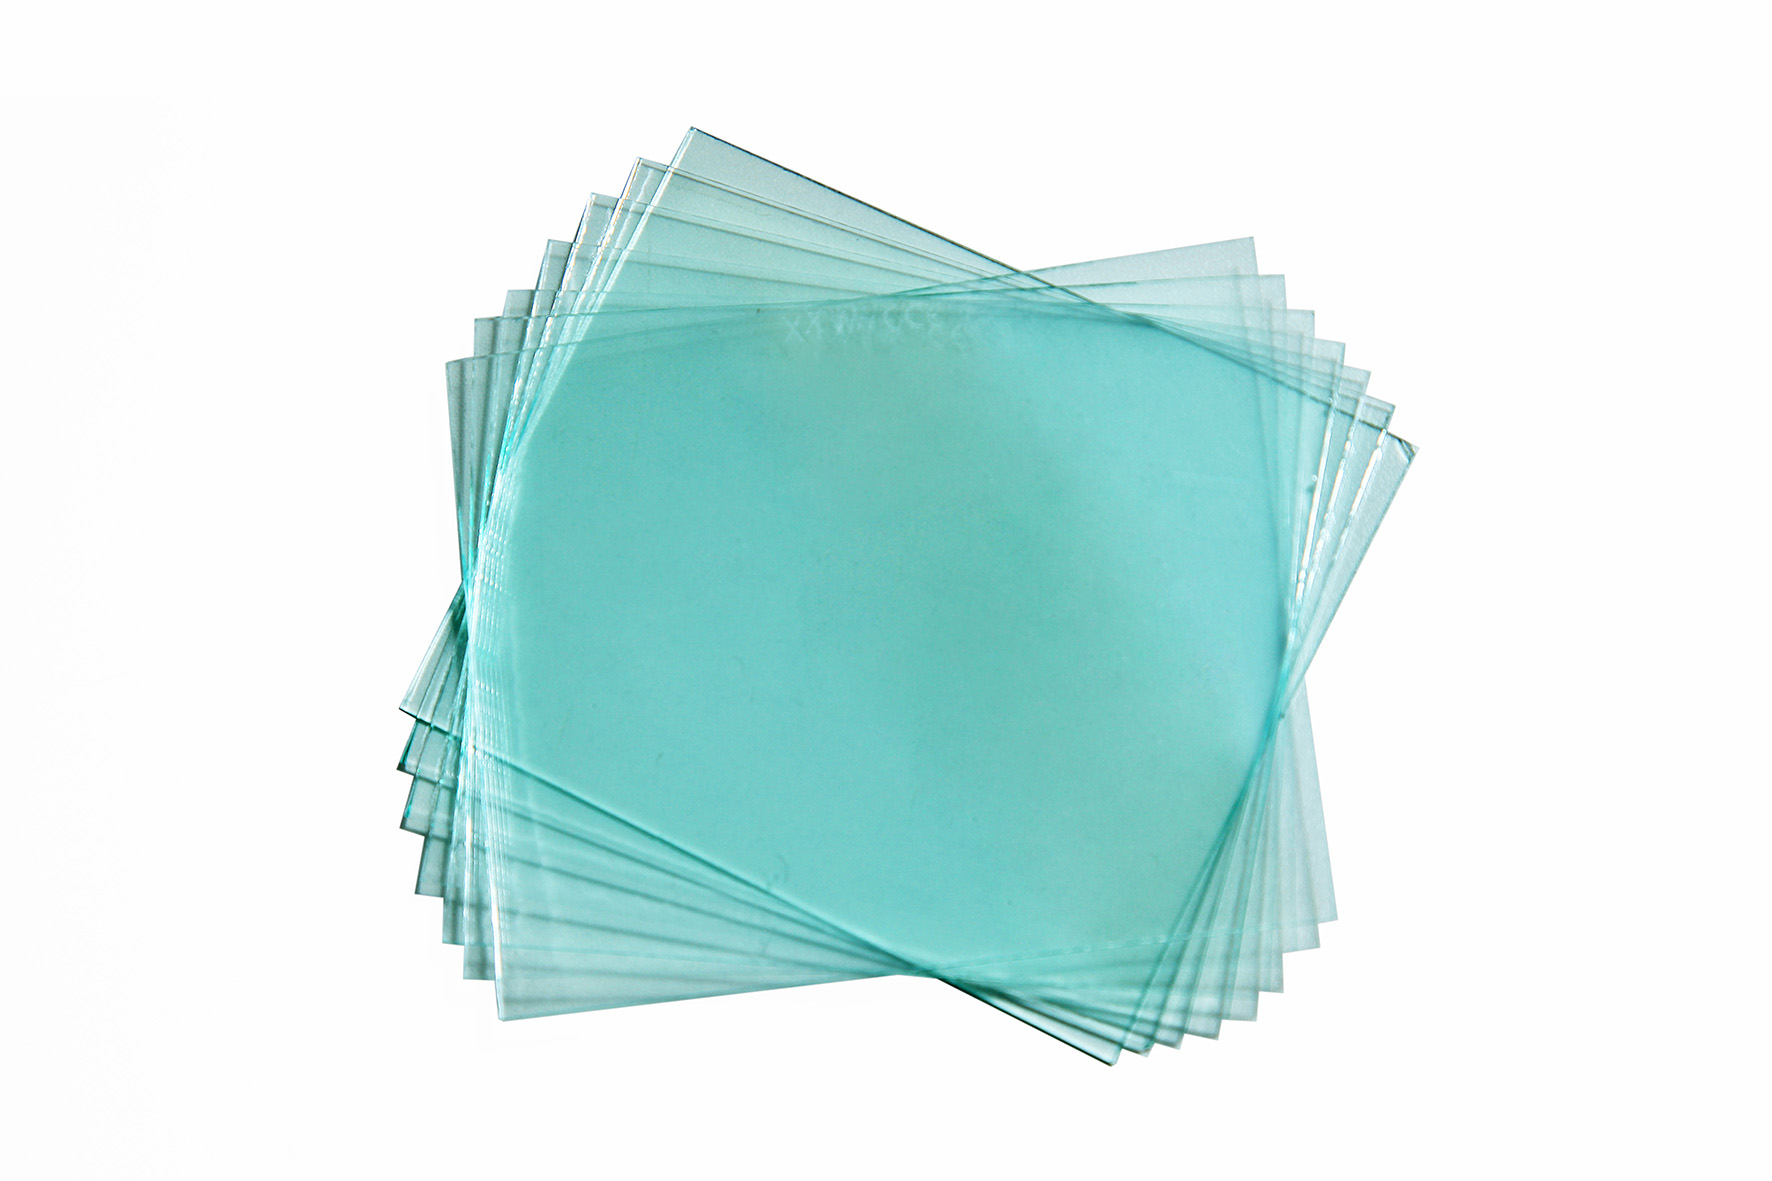 LENSES 83 × 108 MM page image